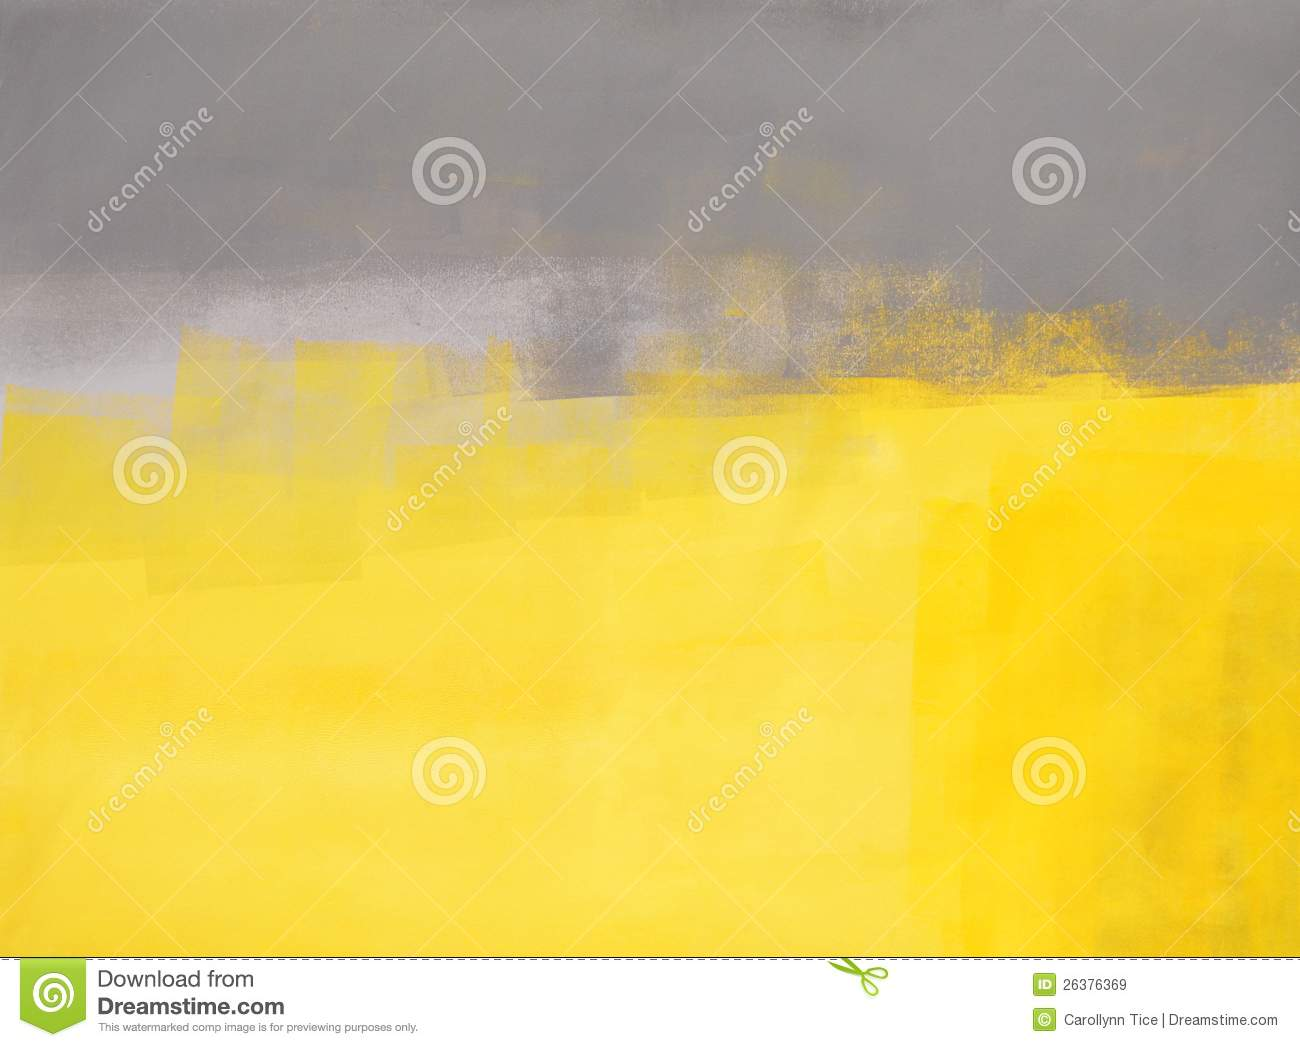 Grey And Yellow Abstract Art Painting Stock Image - Image of decor ...